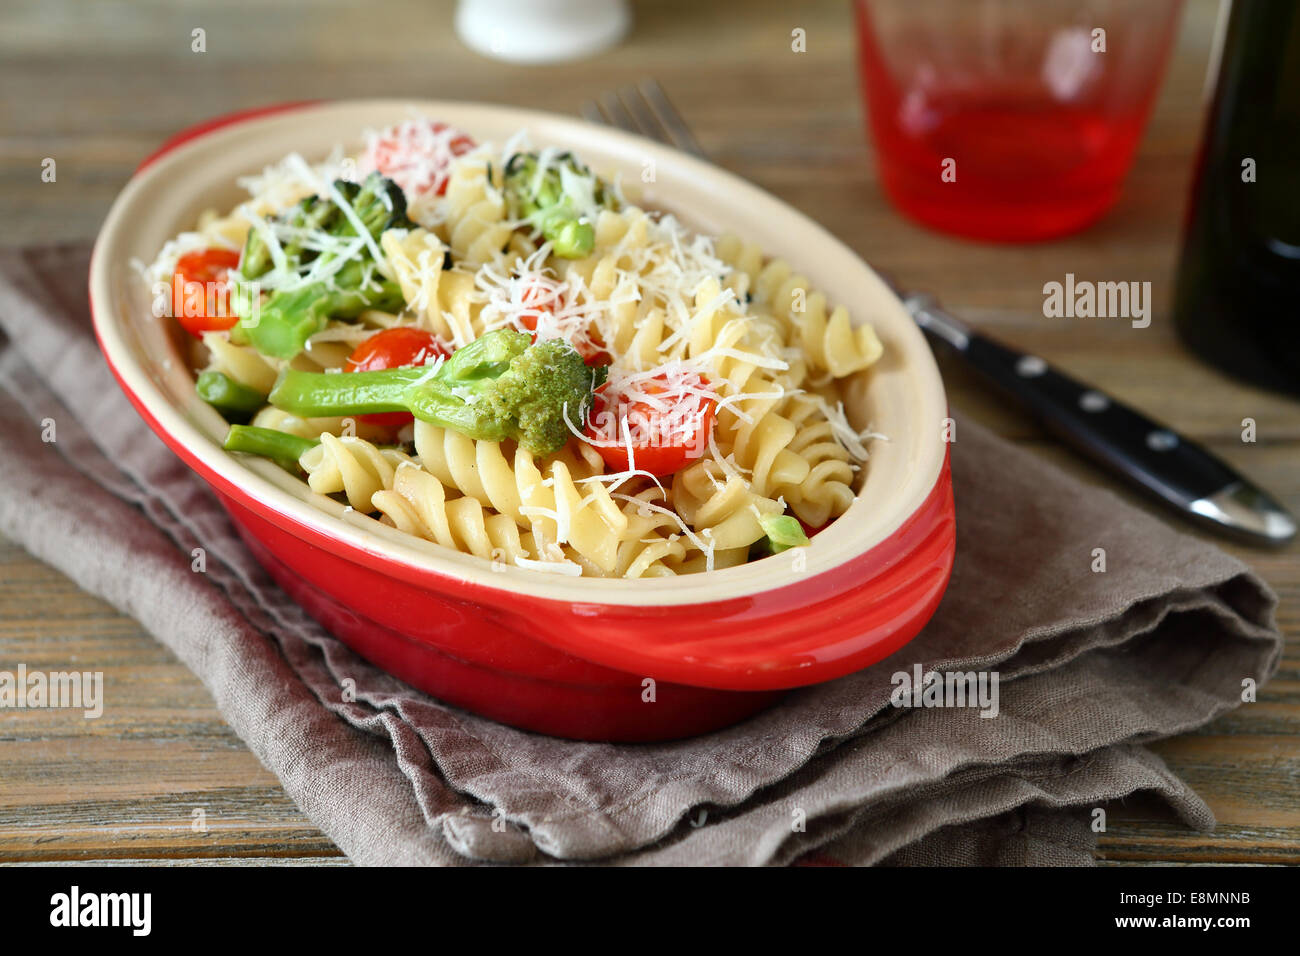 Pasta with grilled broccoli, shredded cheese and tomatoes, delicious italian food - Stock Image